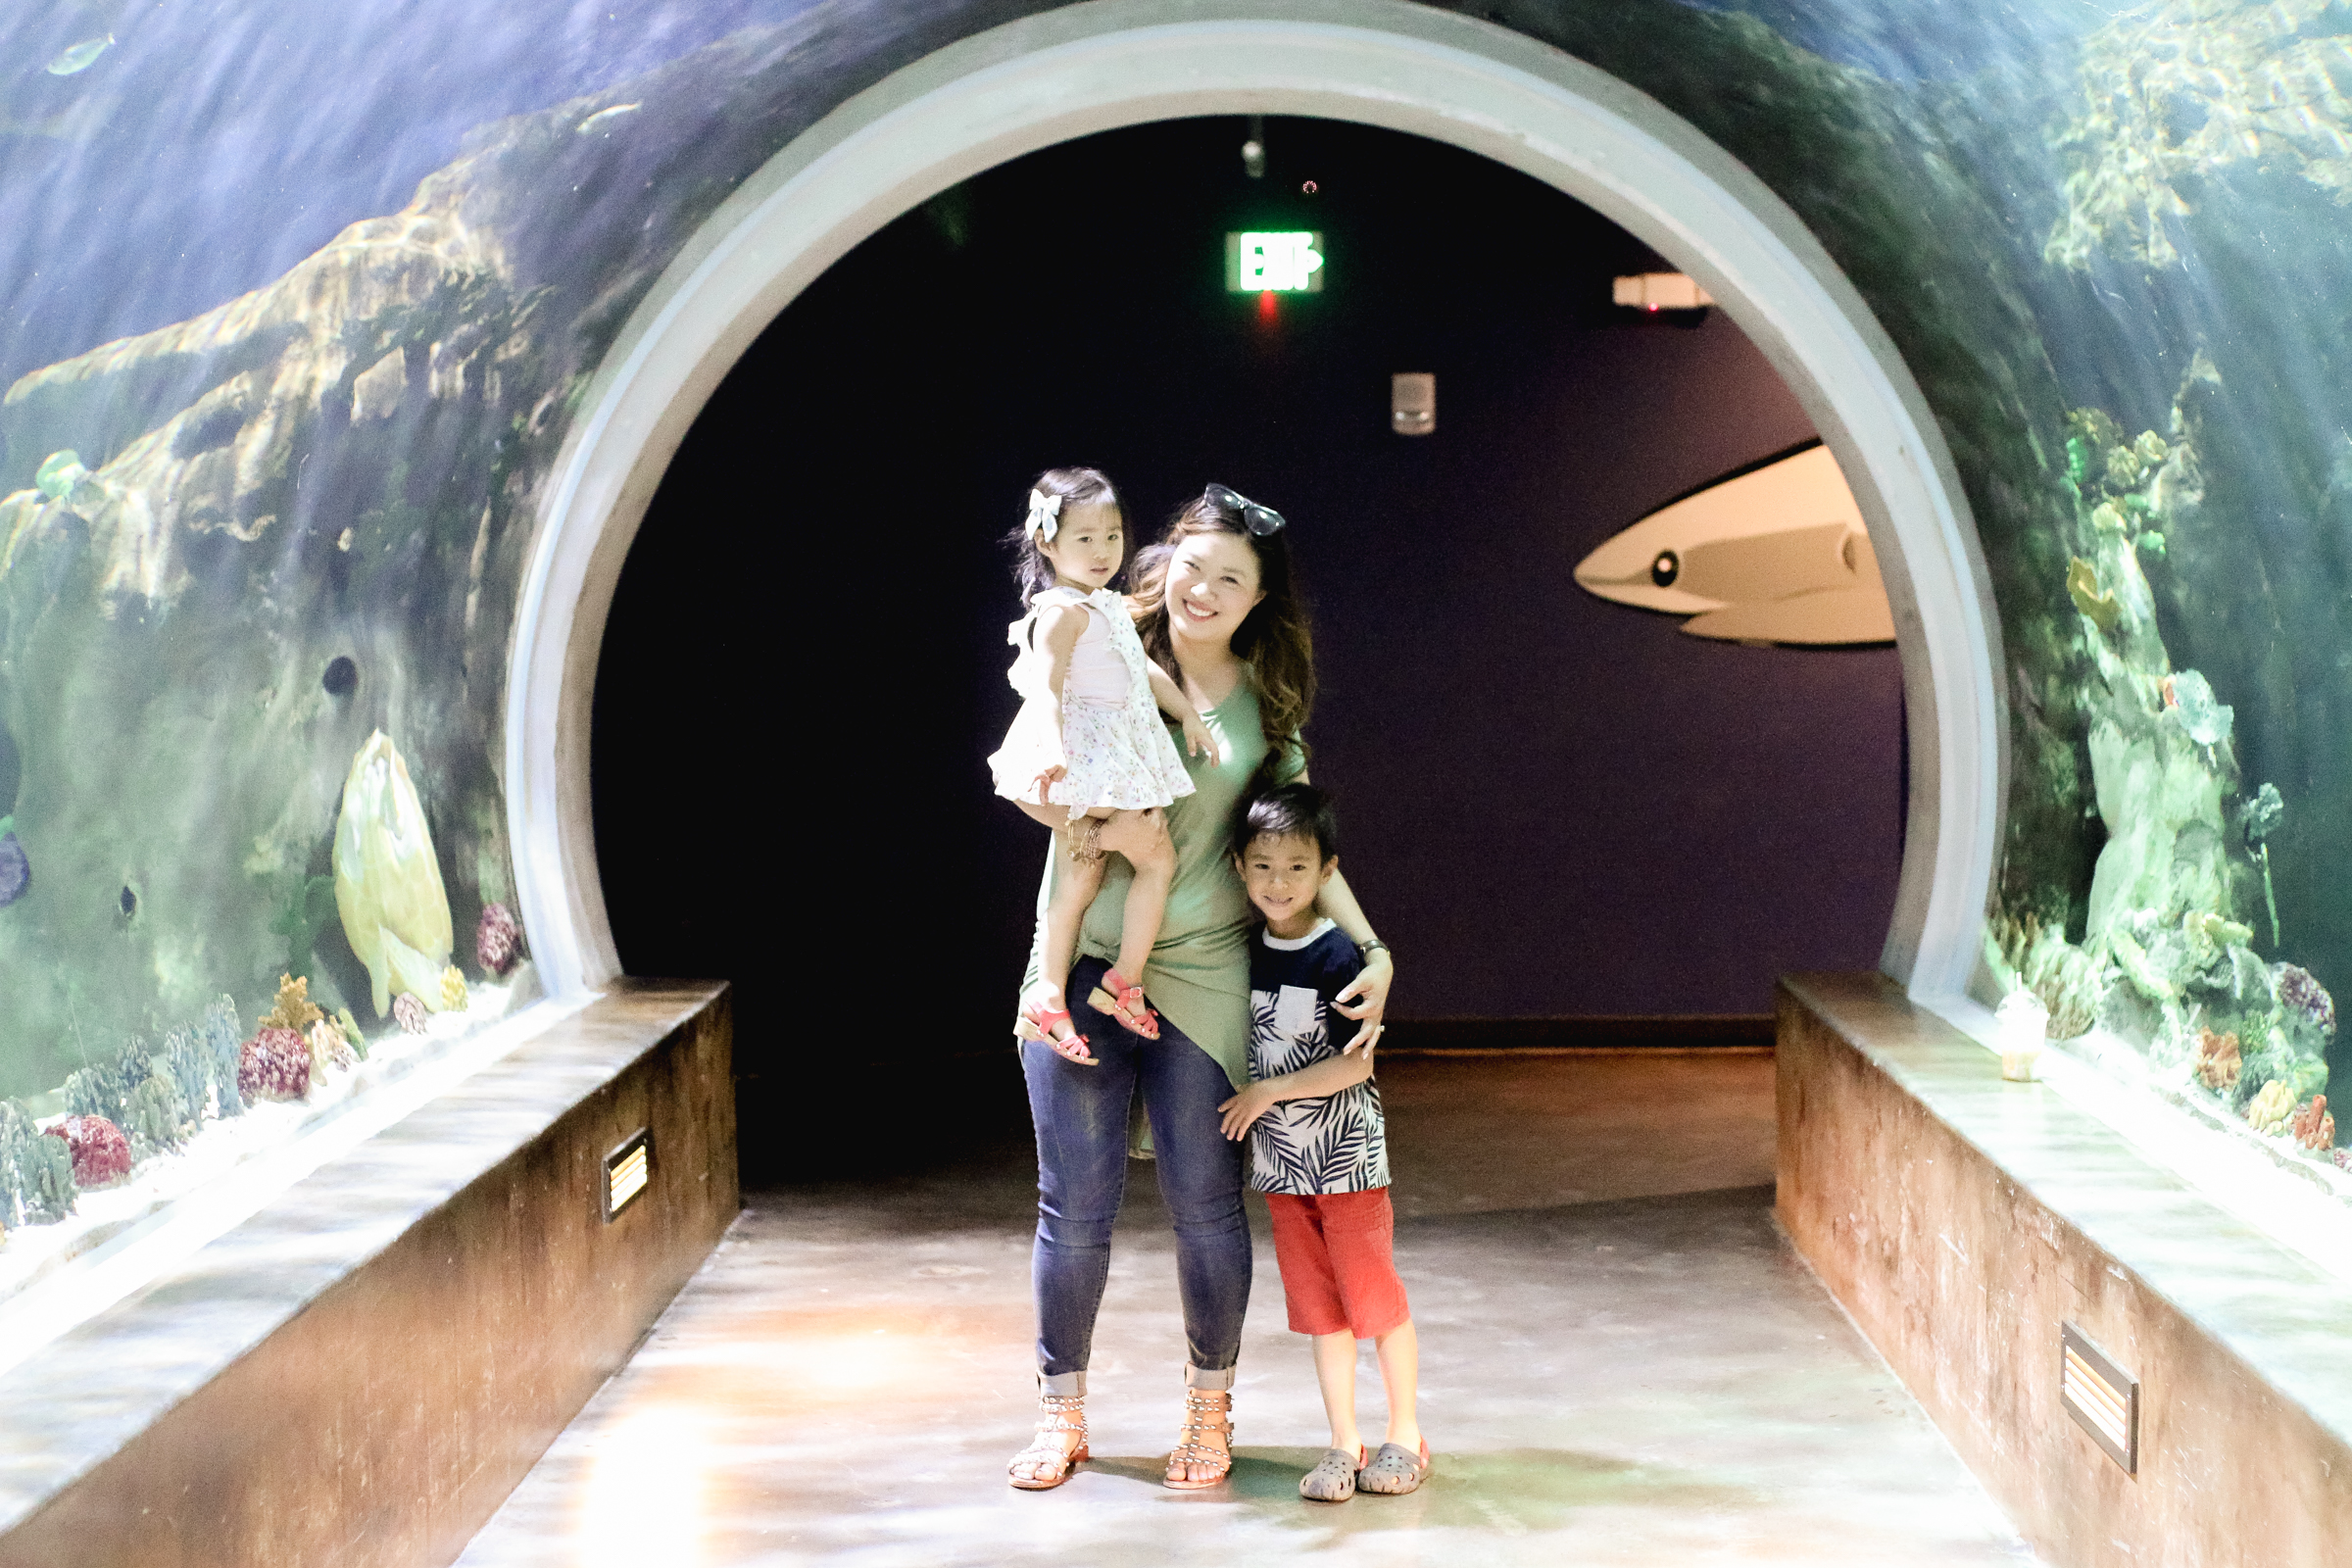 3 Tips to Visit the Loveland Living Planet Aquarium With Your Family by popular blogger Sandy A La Mode